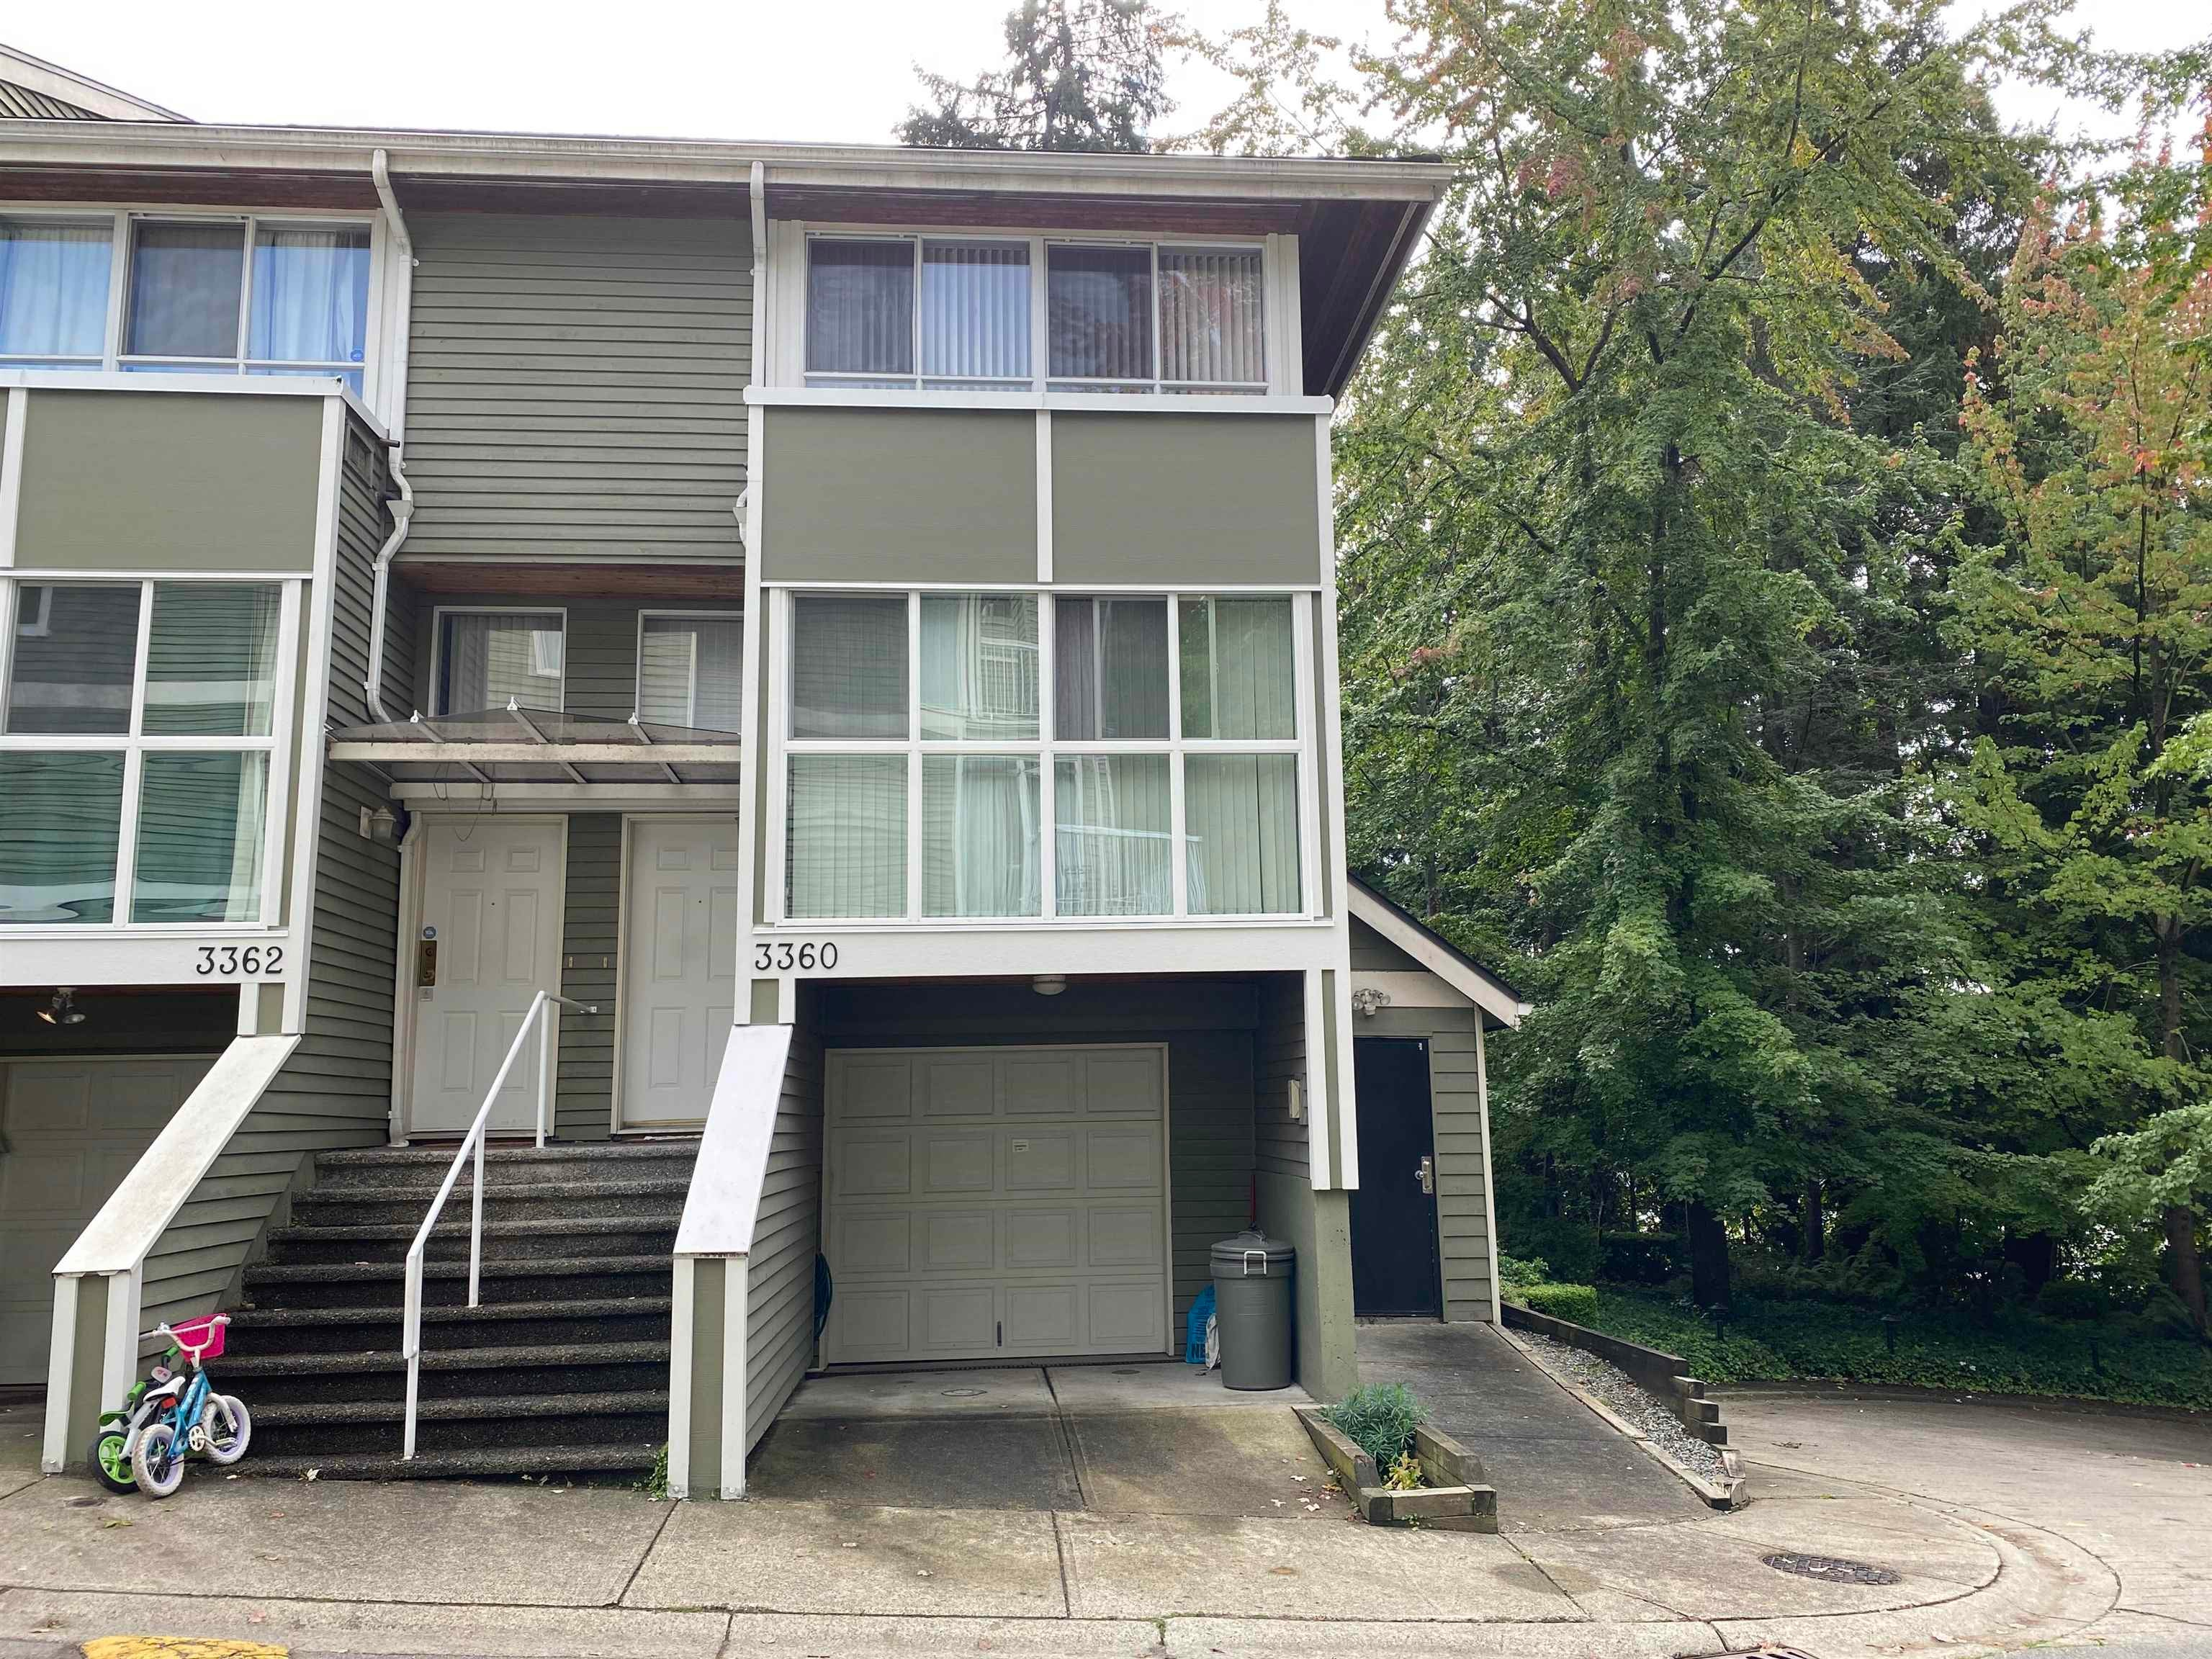 3360 COBBLESTONE AVENUE - Champlain Heights Townhouse for sale, 3 Bedrooms (R2620593) - #1